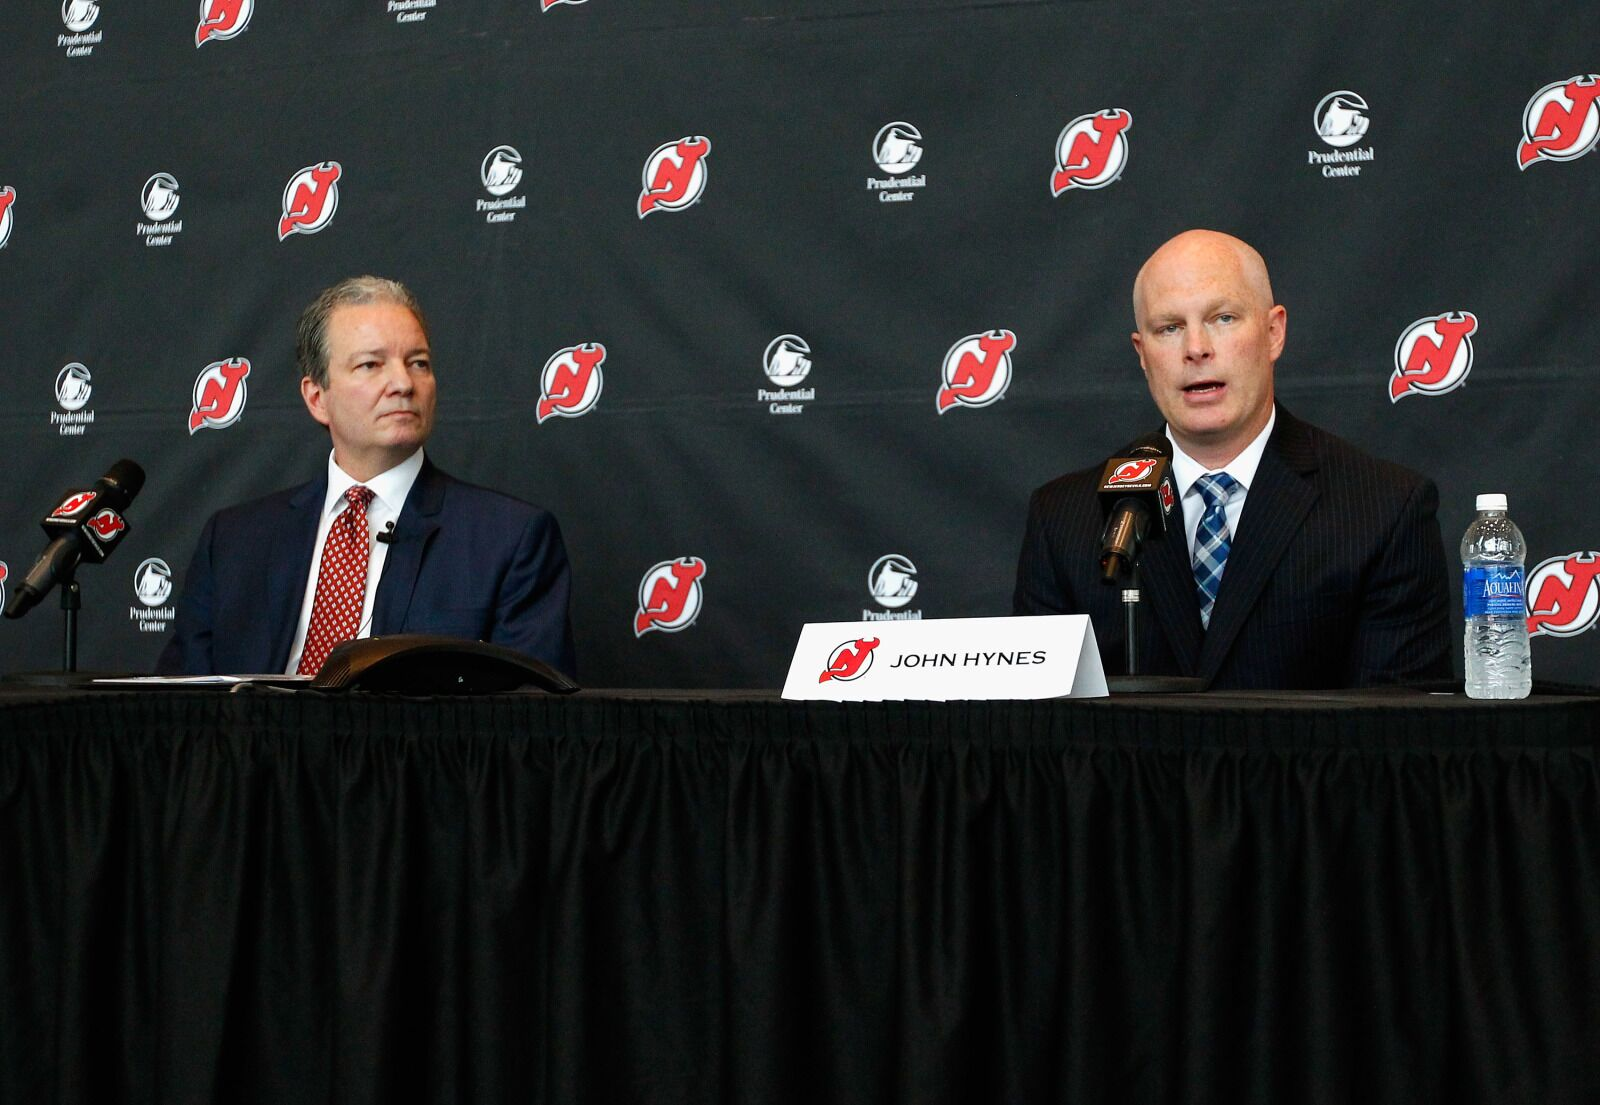 New Jersey Devils: Why Is The Plug Not Being Pulled On John Hynes